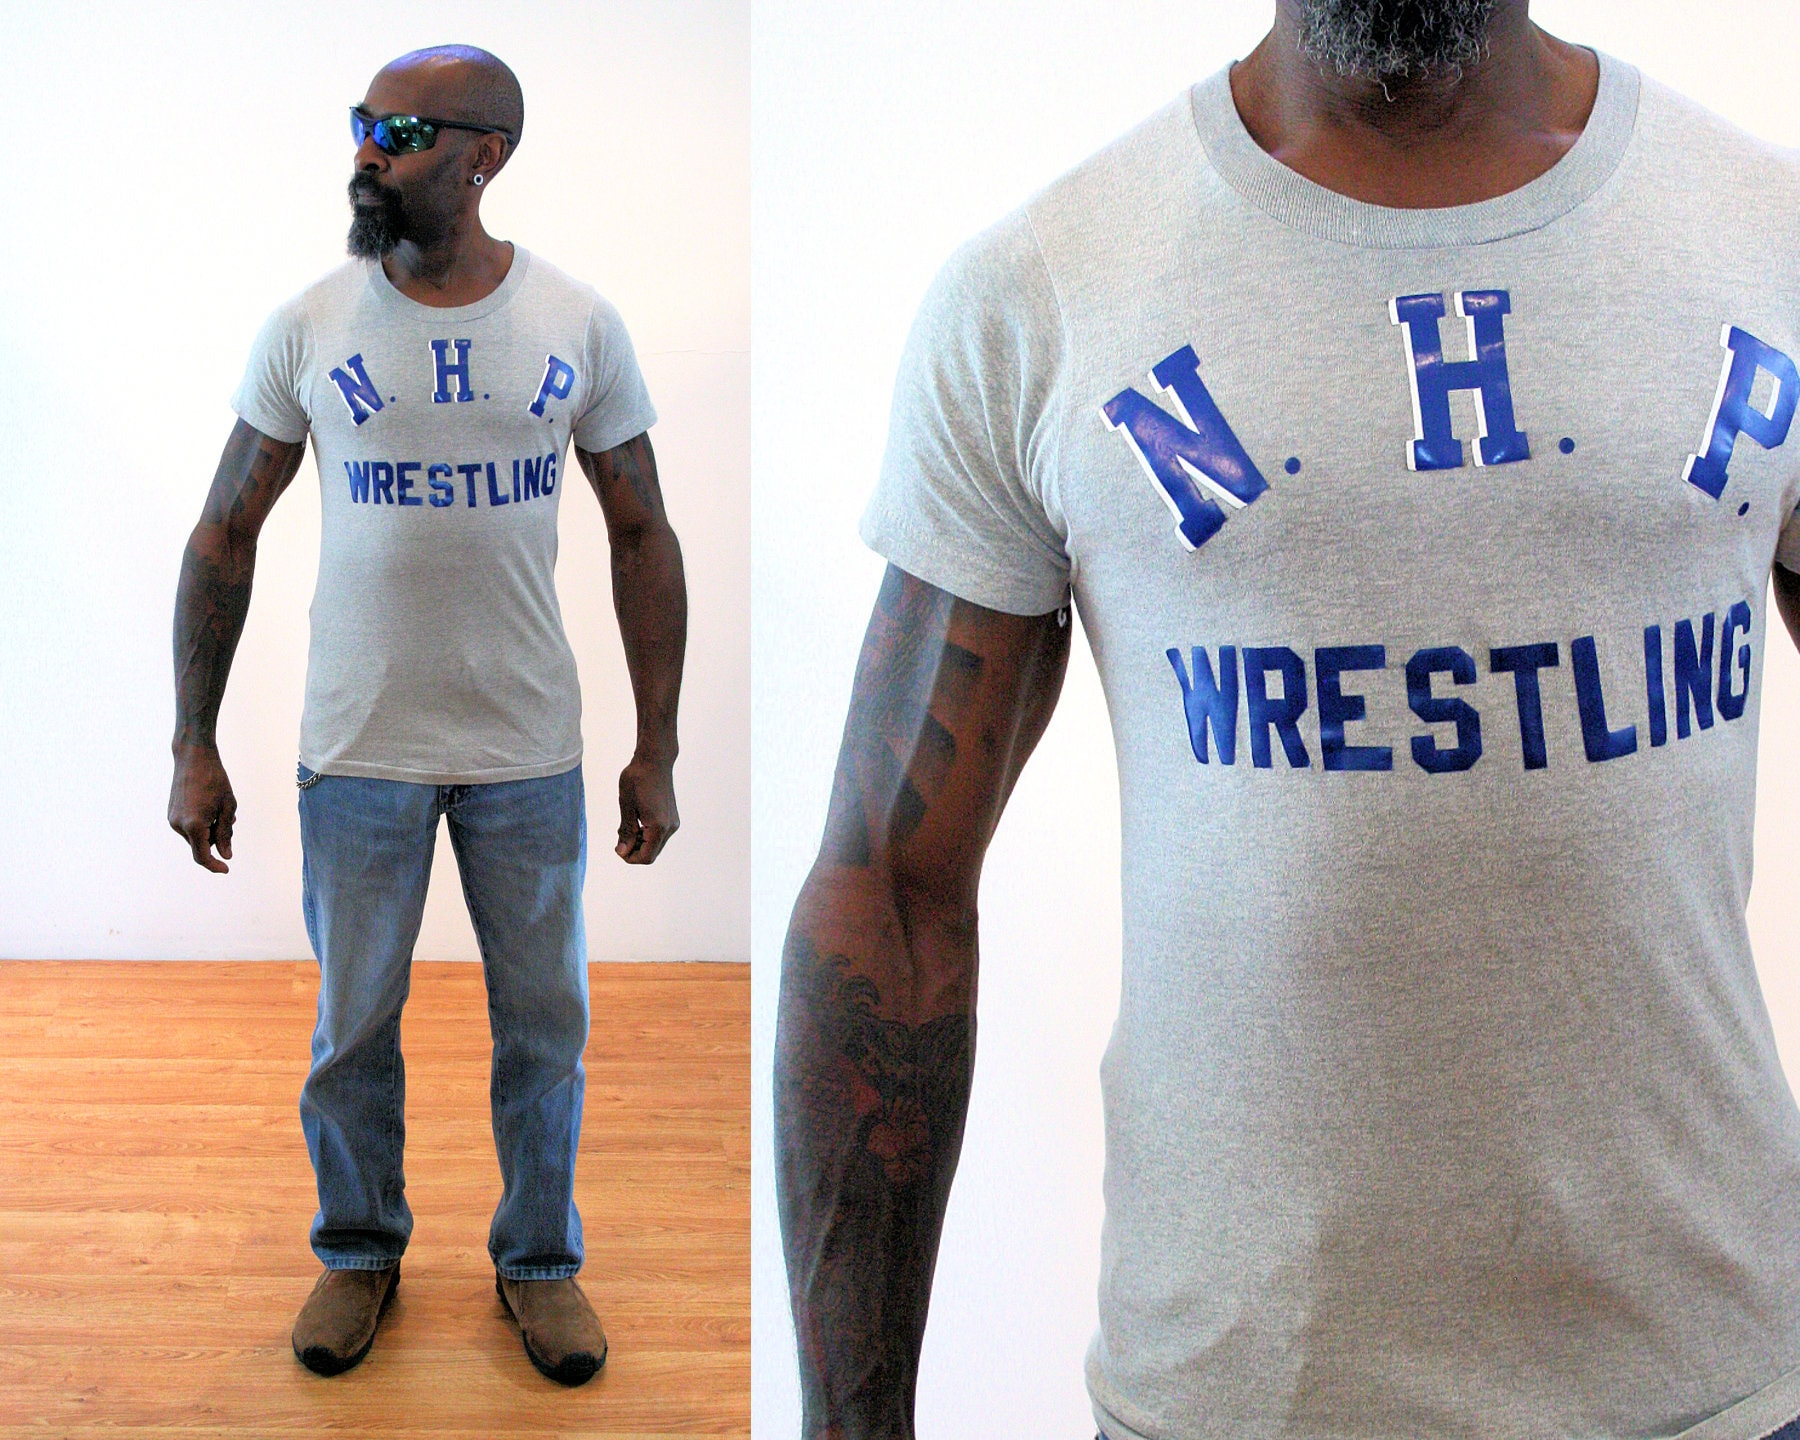 1970s Men's Shirt Styles – Vintage 70s Shirts for Guys 70S Screen Stars Wrestling T-Shirt S Xs, Vintage Nhp Old School Mens Gray Athletic Tee, Extra Small $41.00 AT vintagedancer.com